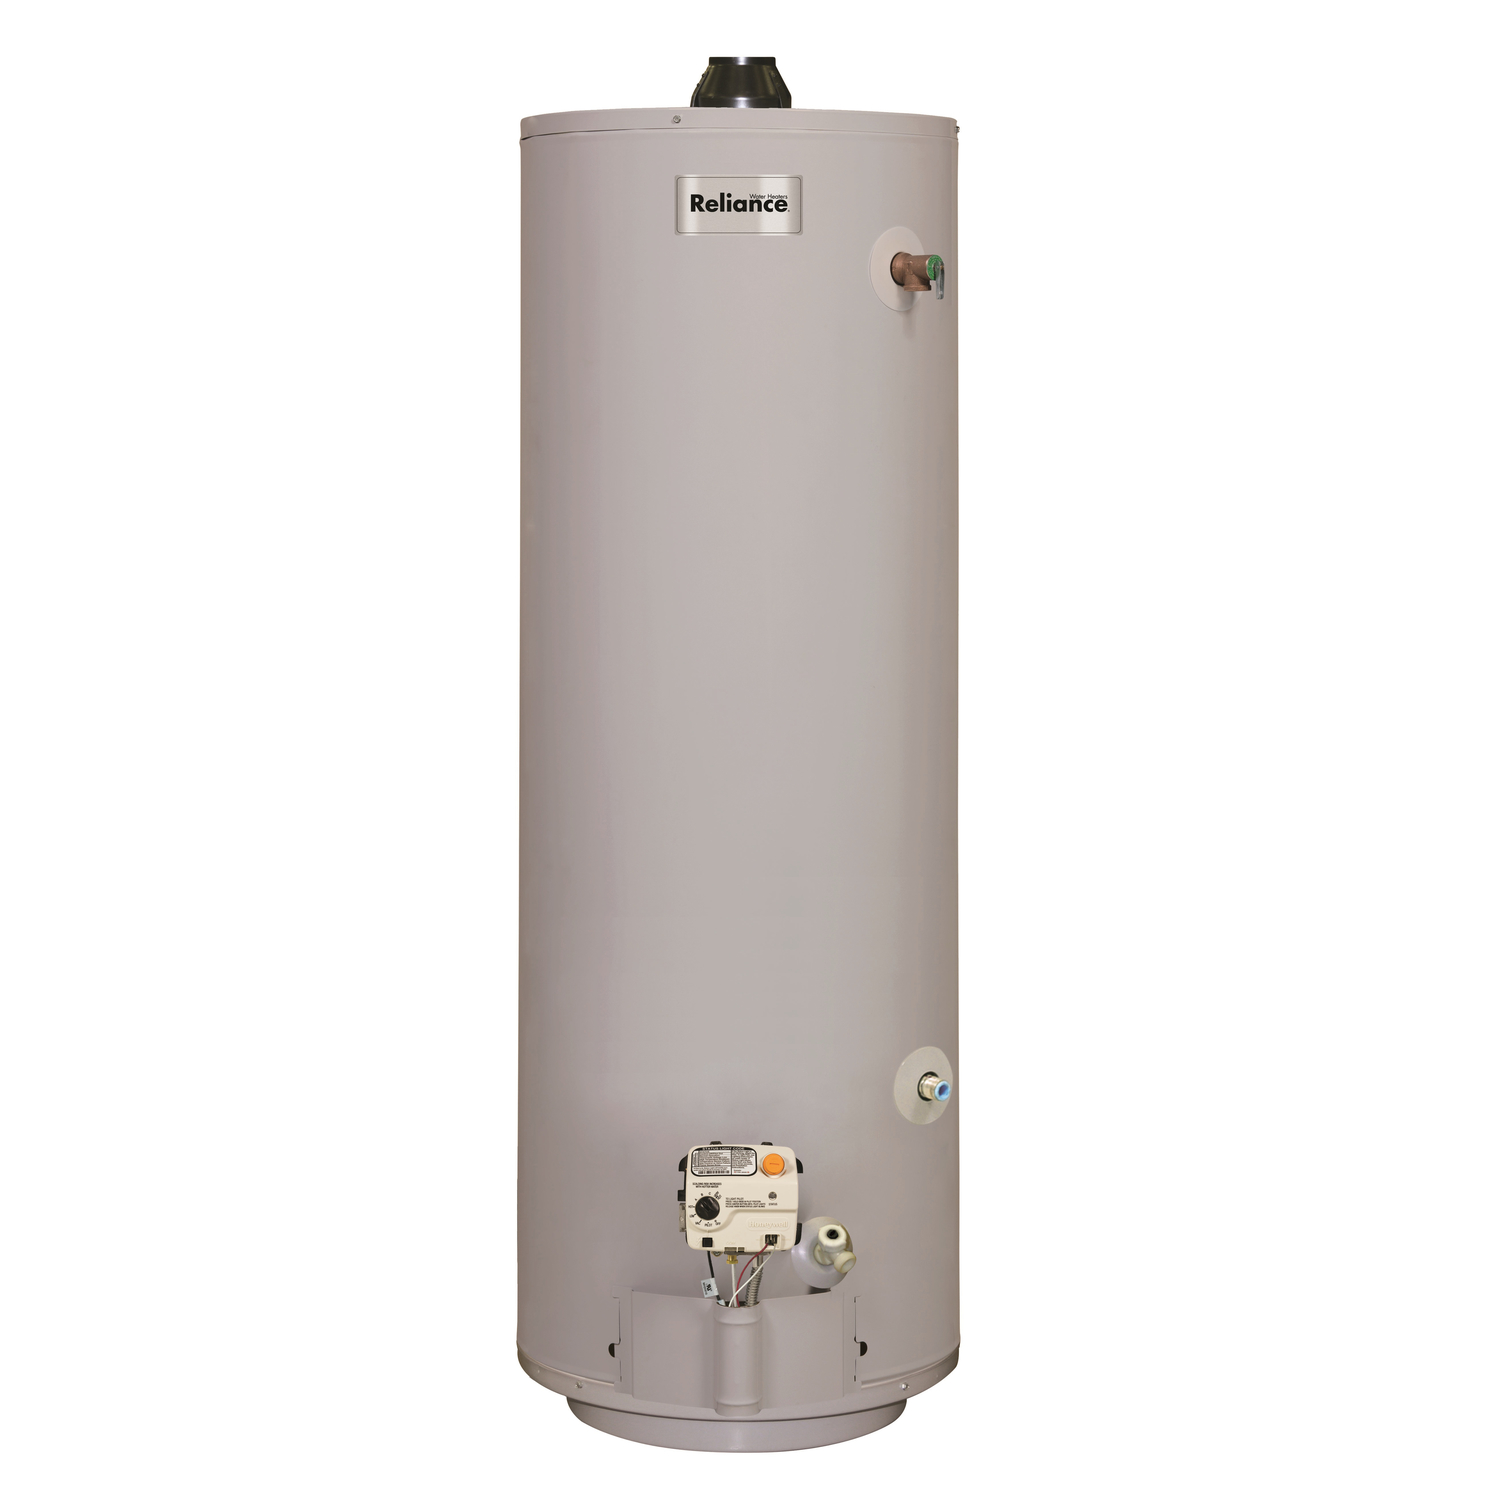 Reliance  Natural Gas/Propane  Mobile Home Water Heater  58 in. H x 18 in. L x 18 in. W 30 gal.